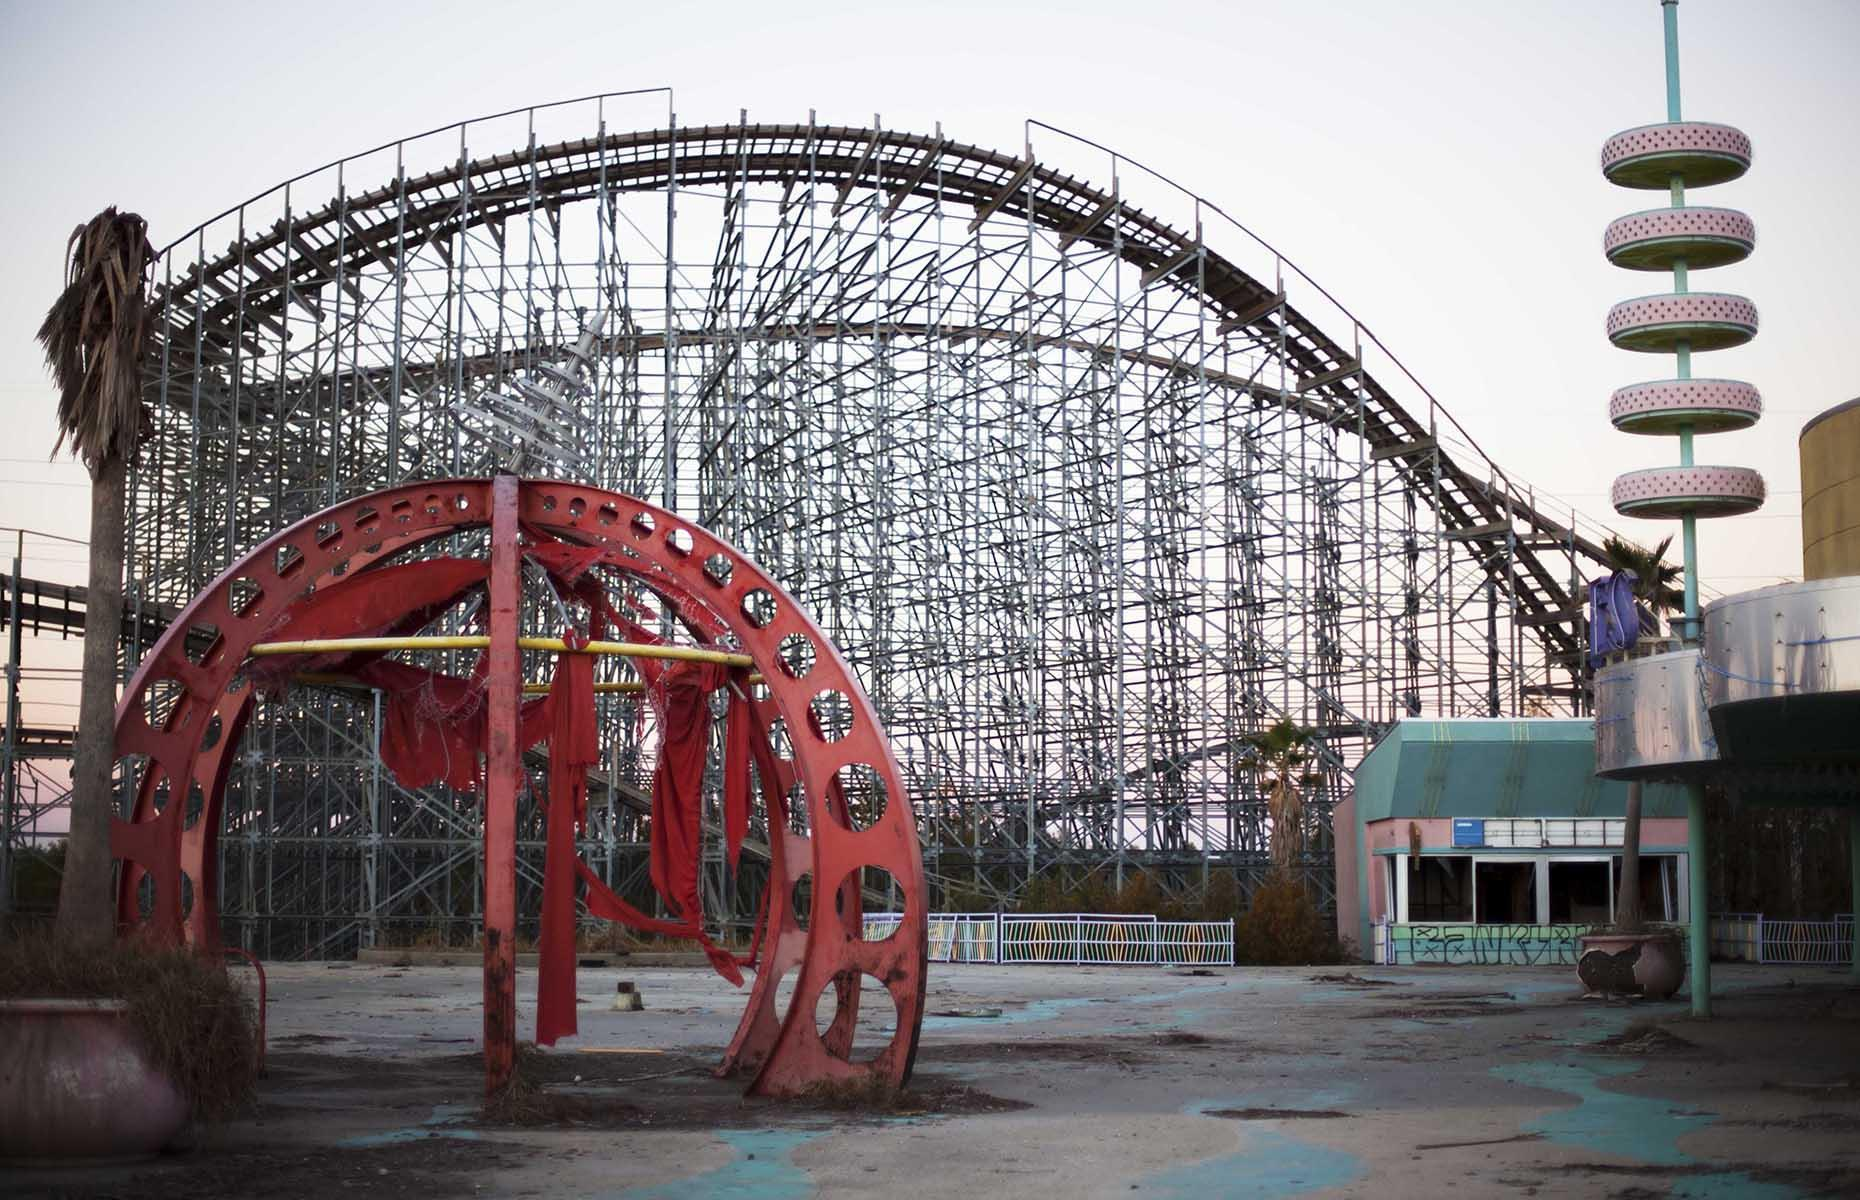 Slide 15 of 40: Instead of the screams of joy and laughter once heard in the park, it's now silent, with graffiti gracing almost every surface, and disused roller coasters, dodgems and Ferris wheels rusting away, never to be used again.